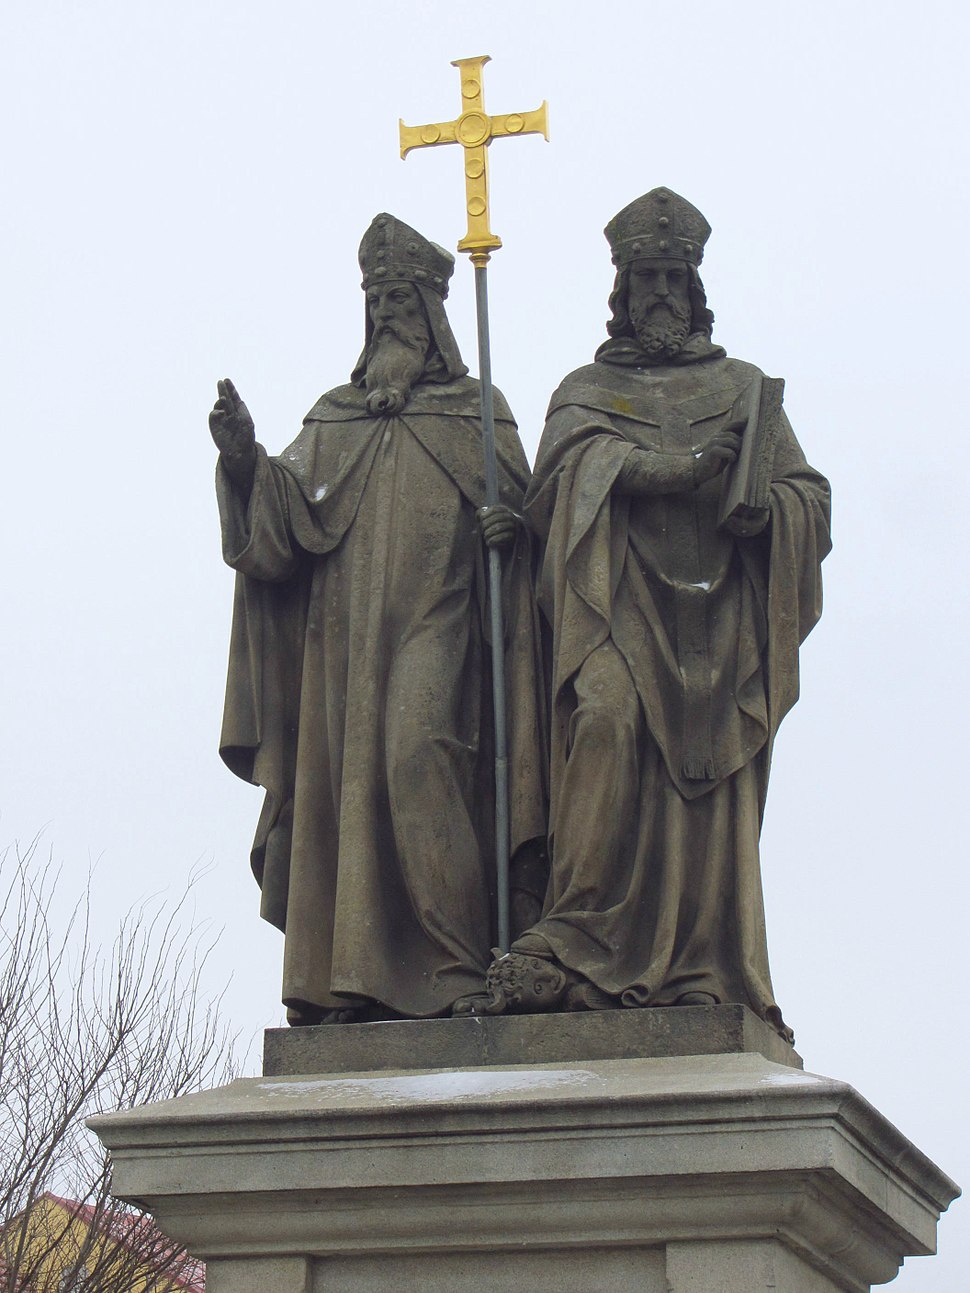 Statue, Saints Cyril and Methodius, Trebic, Czech Republic